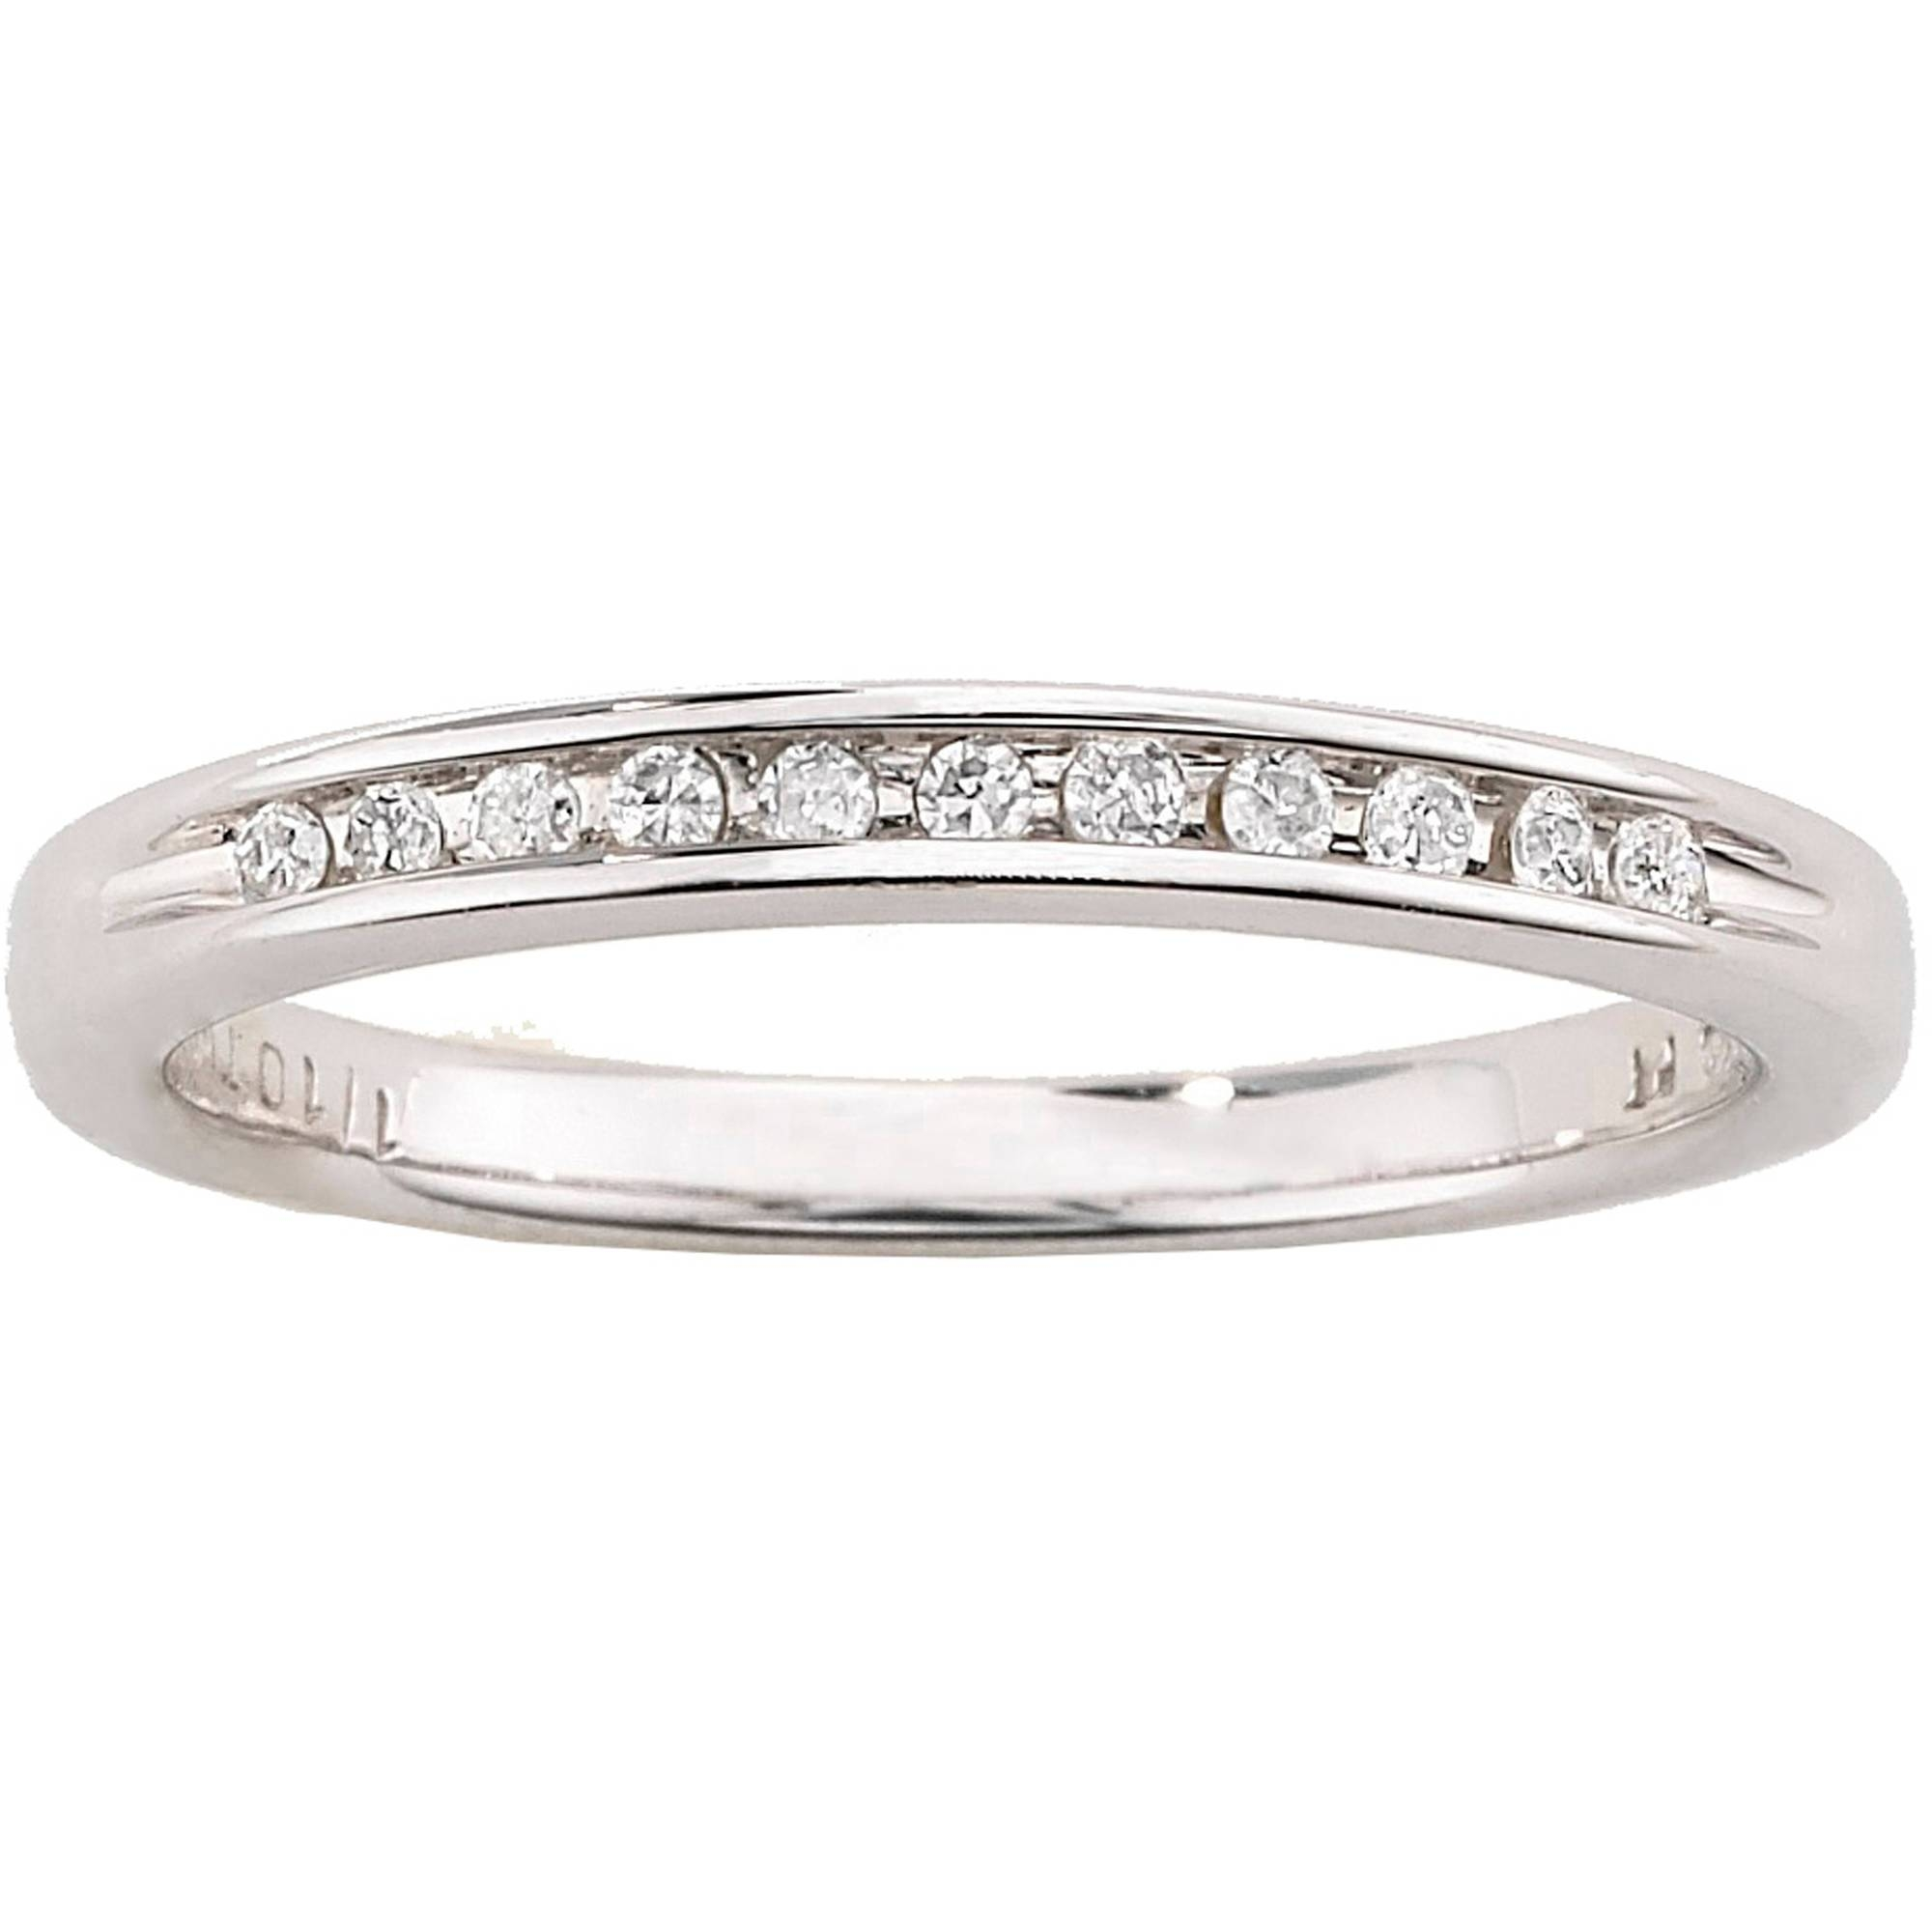 Always & Forever Platinaire 1/12 Carat T.w. Diamond Wedding Band With Wedding Bands At Walmart (Gallery 1 of 15)